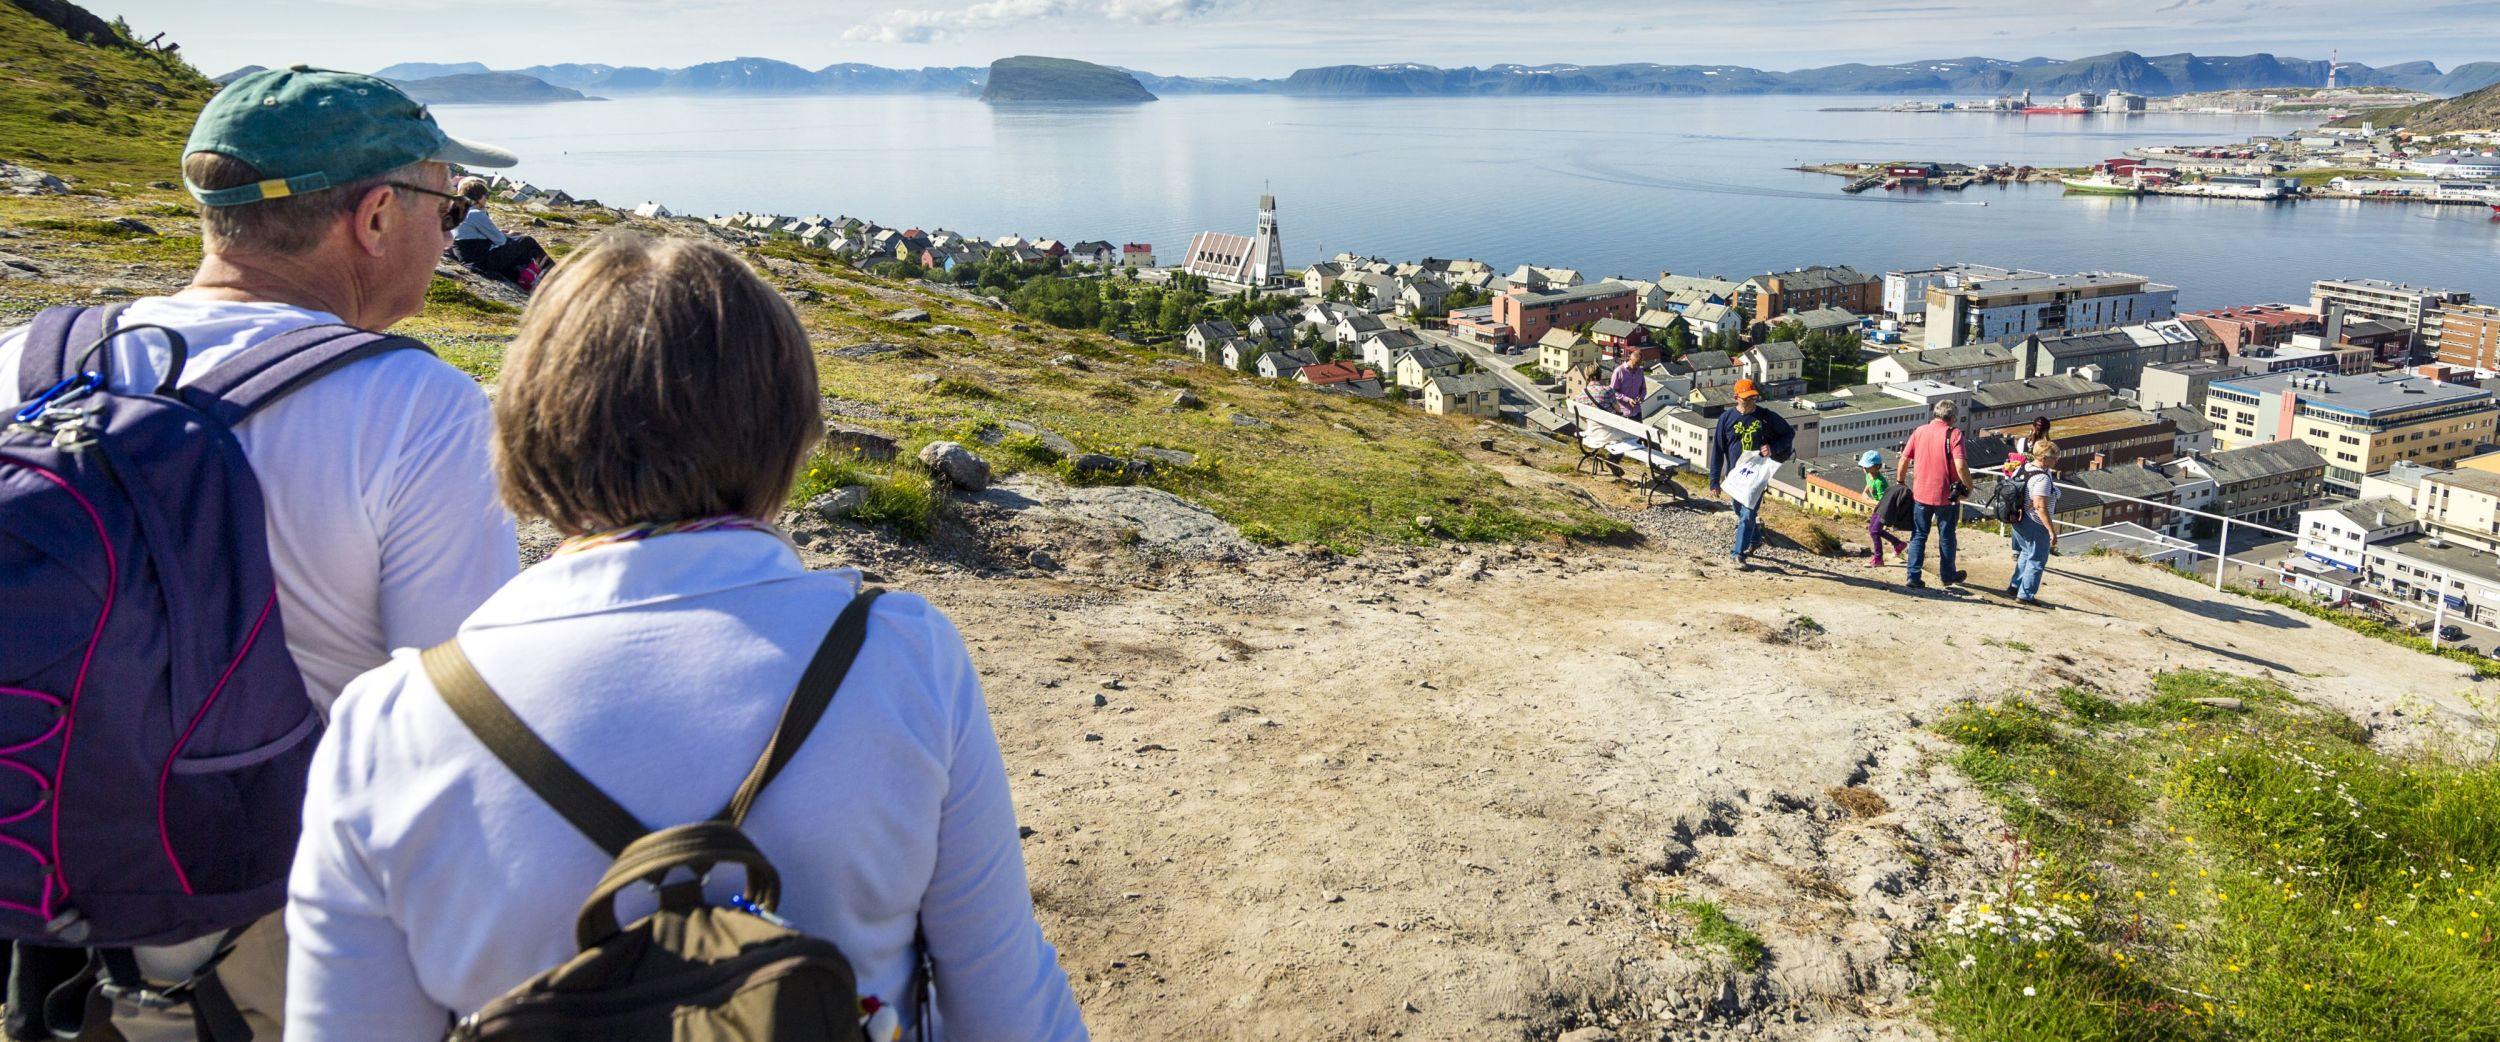 Viewpoint Salen. People enjoying the view of Hammerfest on a sunny day. Photo: Ziggi Wantuch.